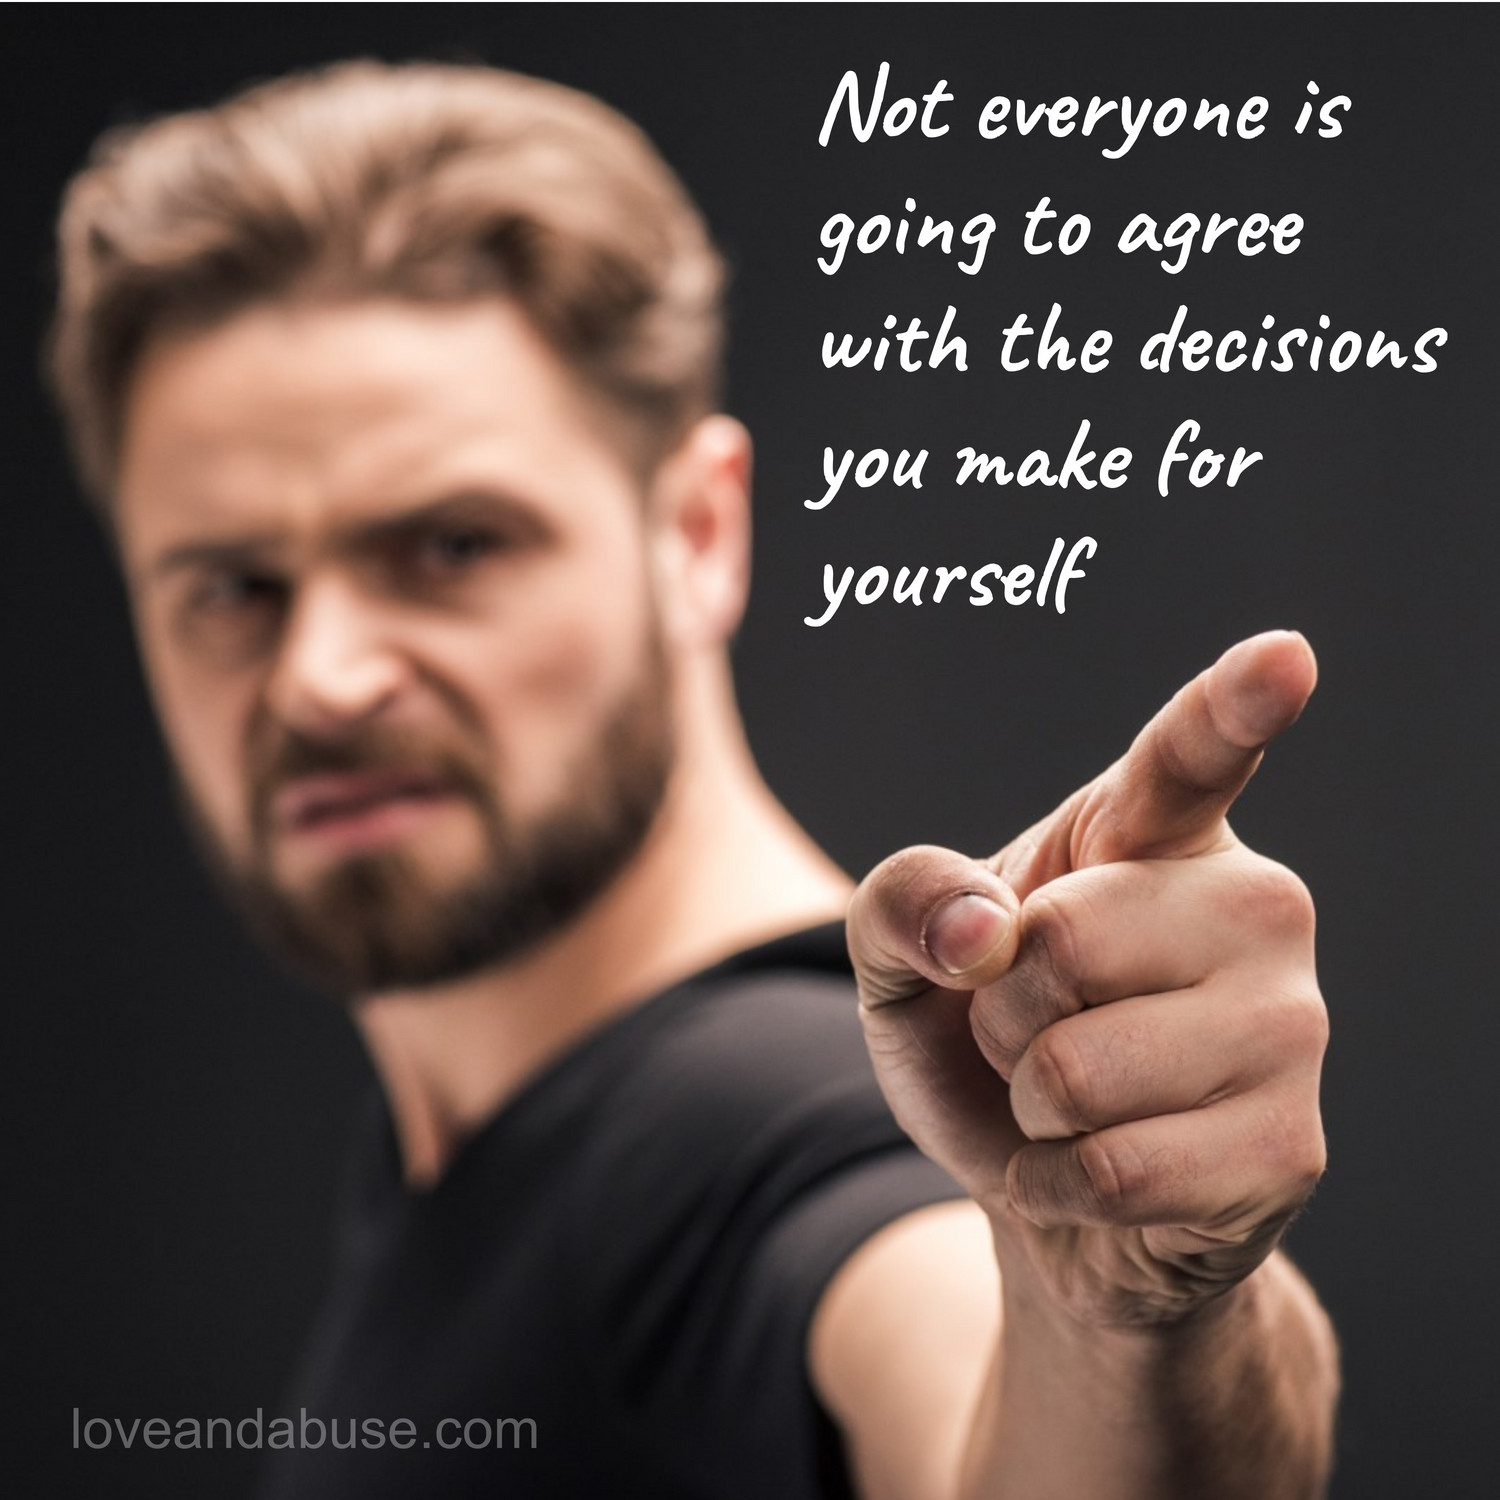 Not everyone is going to agree with the decisions you make for yourself